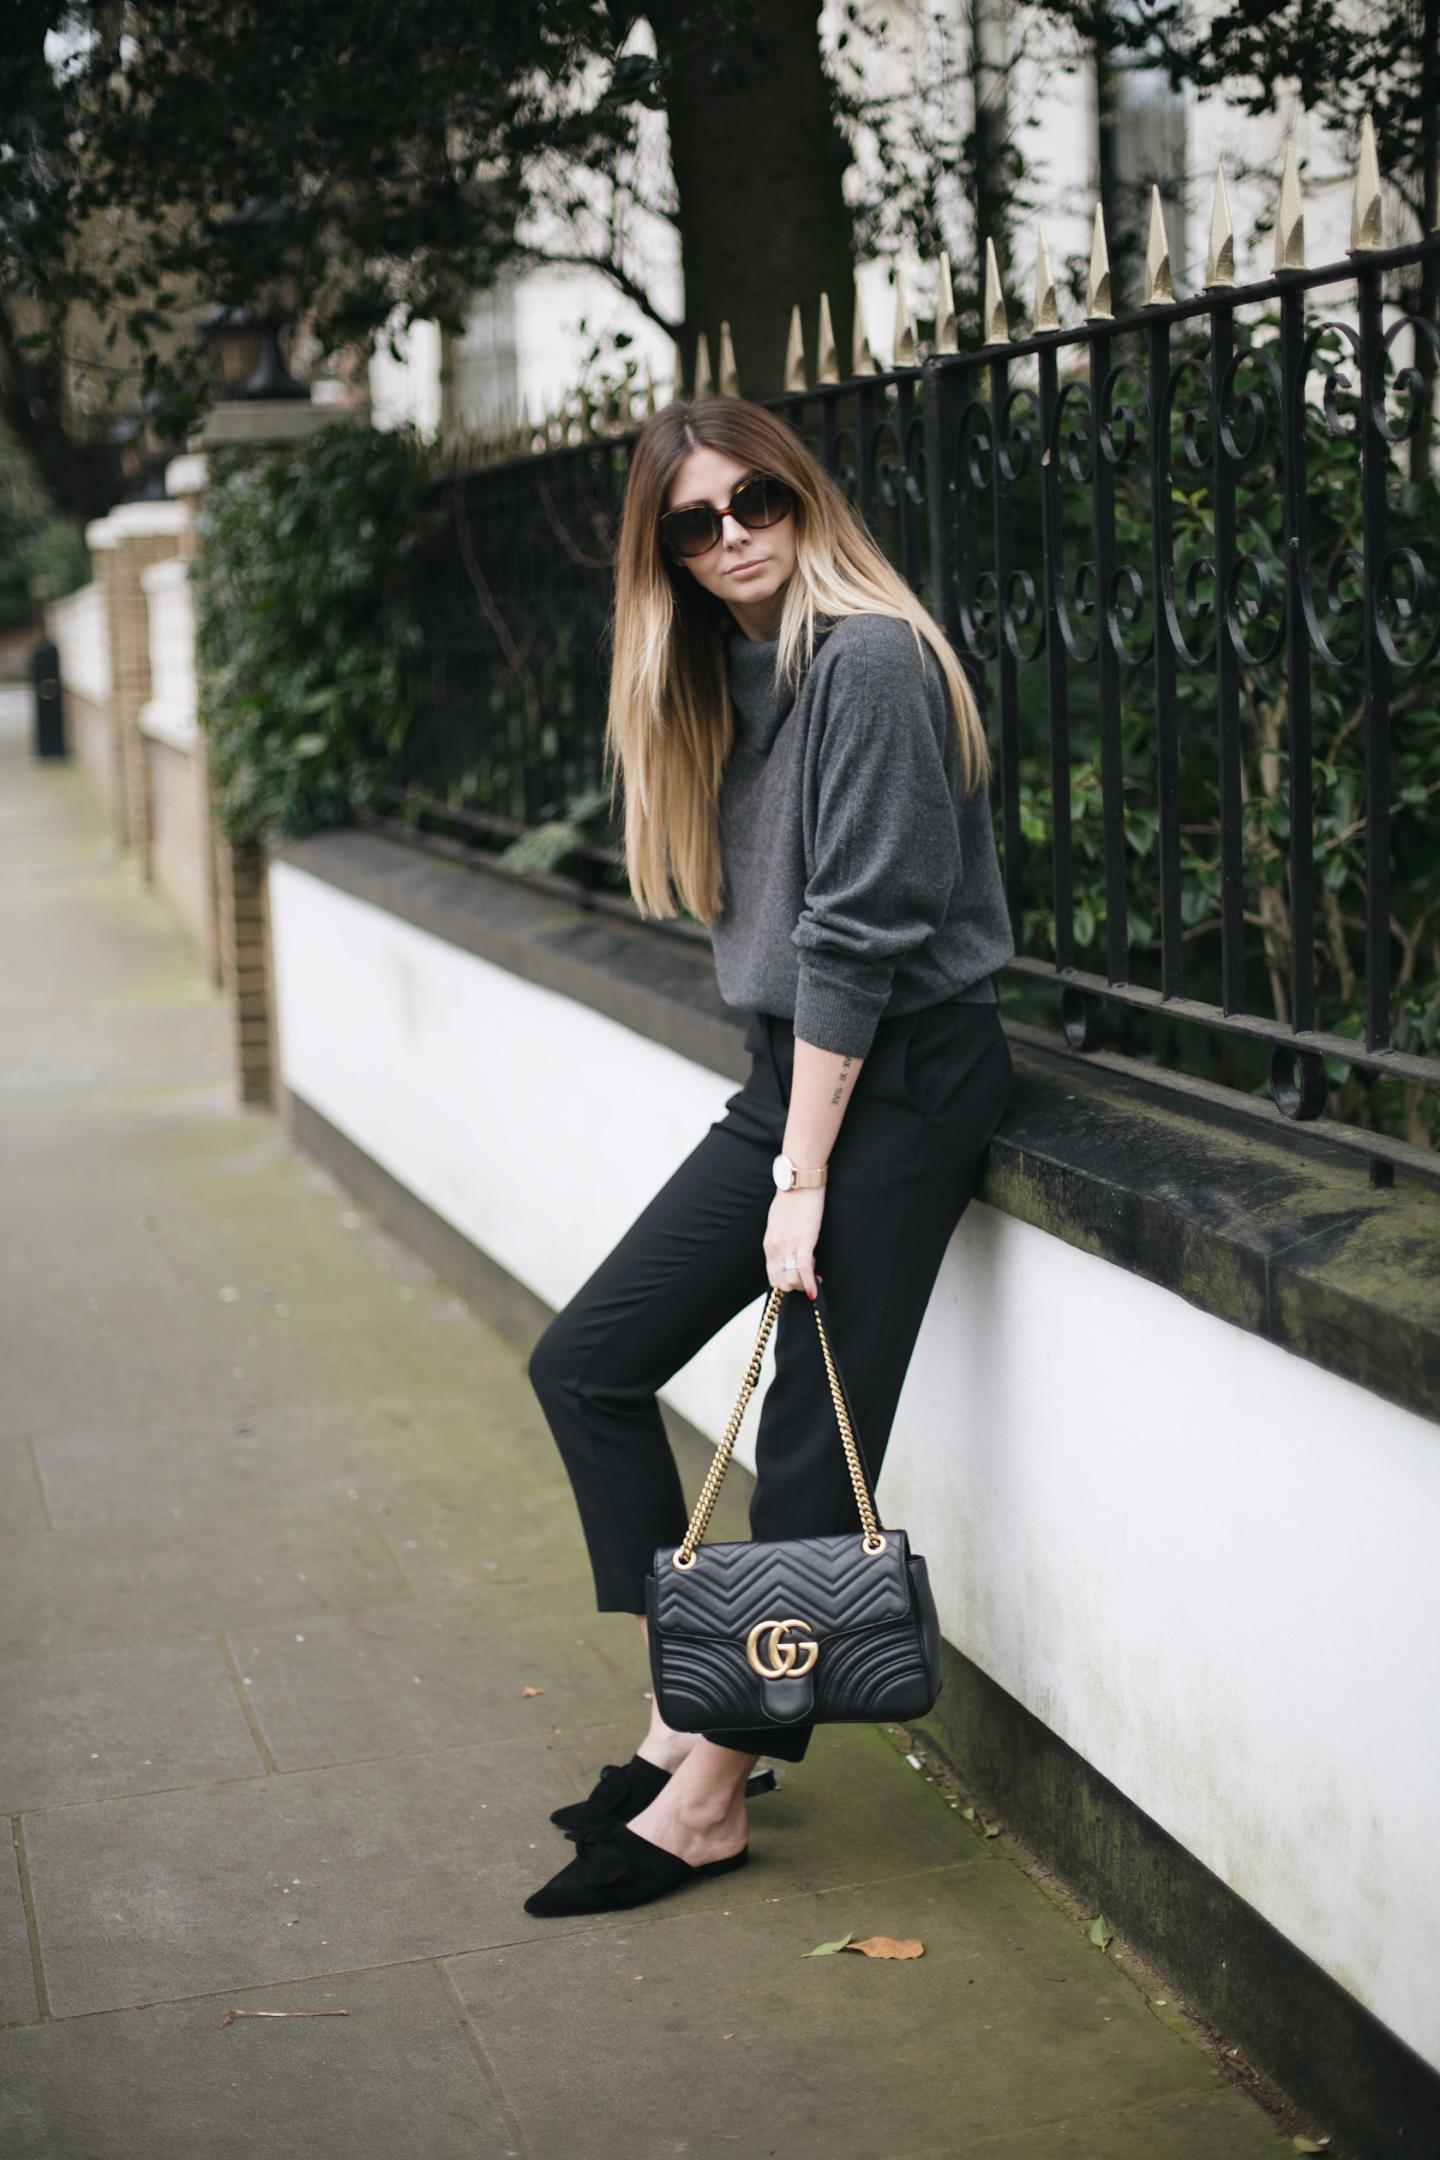 grey cashmere cowl neck sweater, black tailored trousers, oversized sunglasses, Gucci Marmont bag, suede bow slides